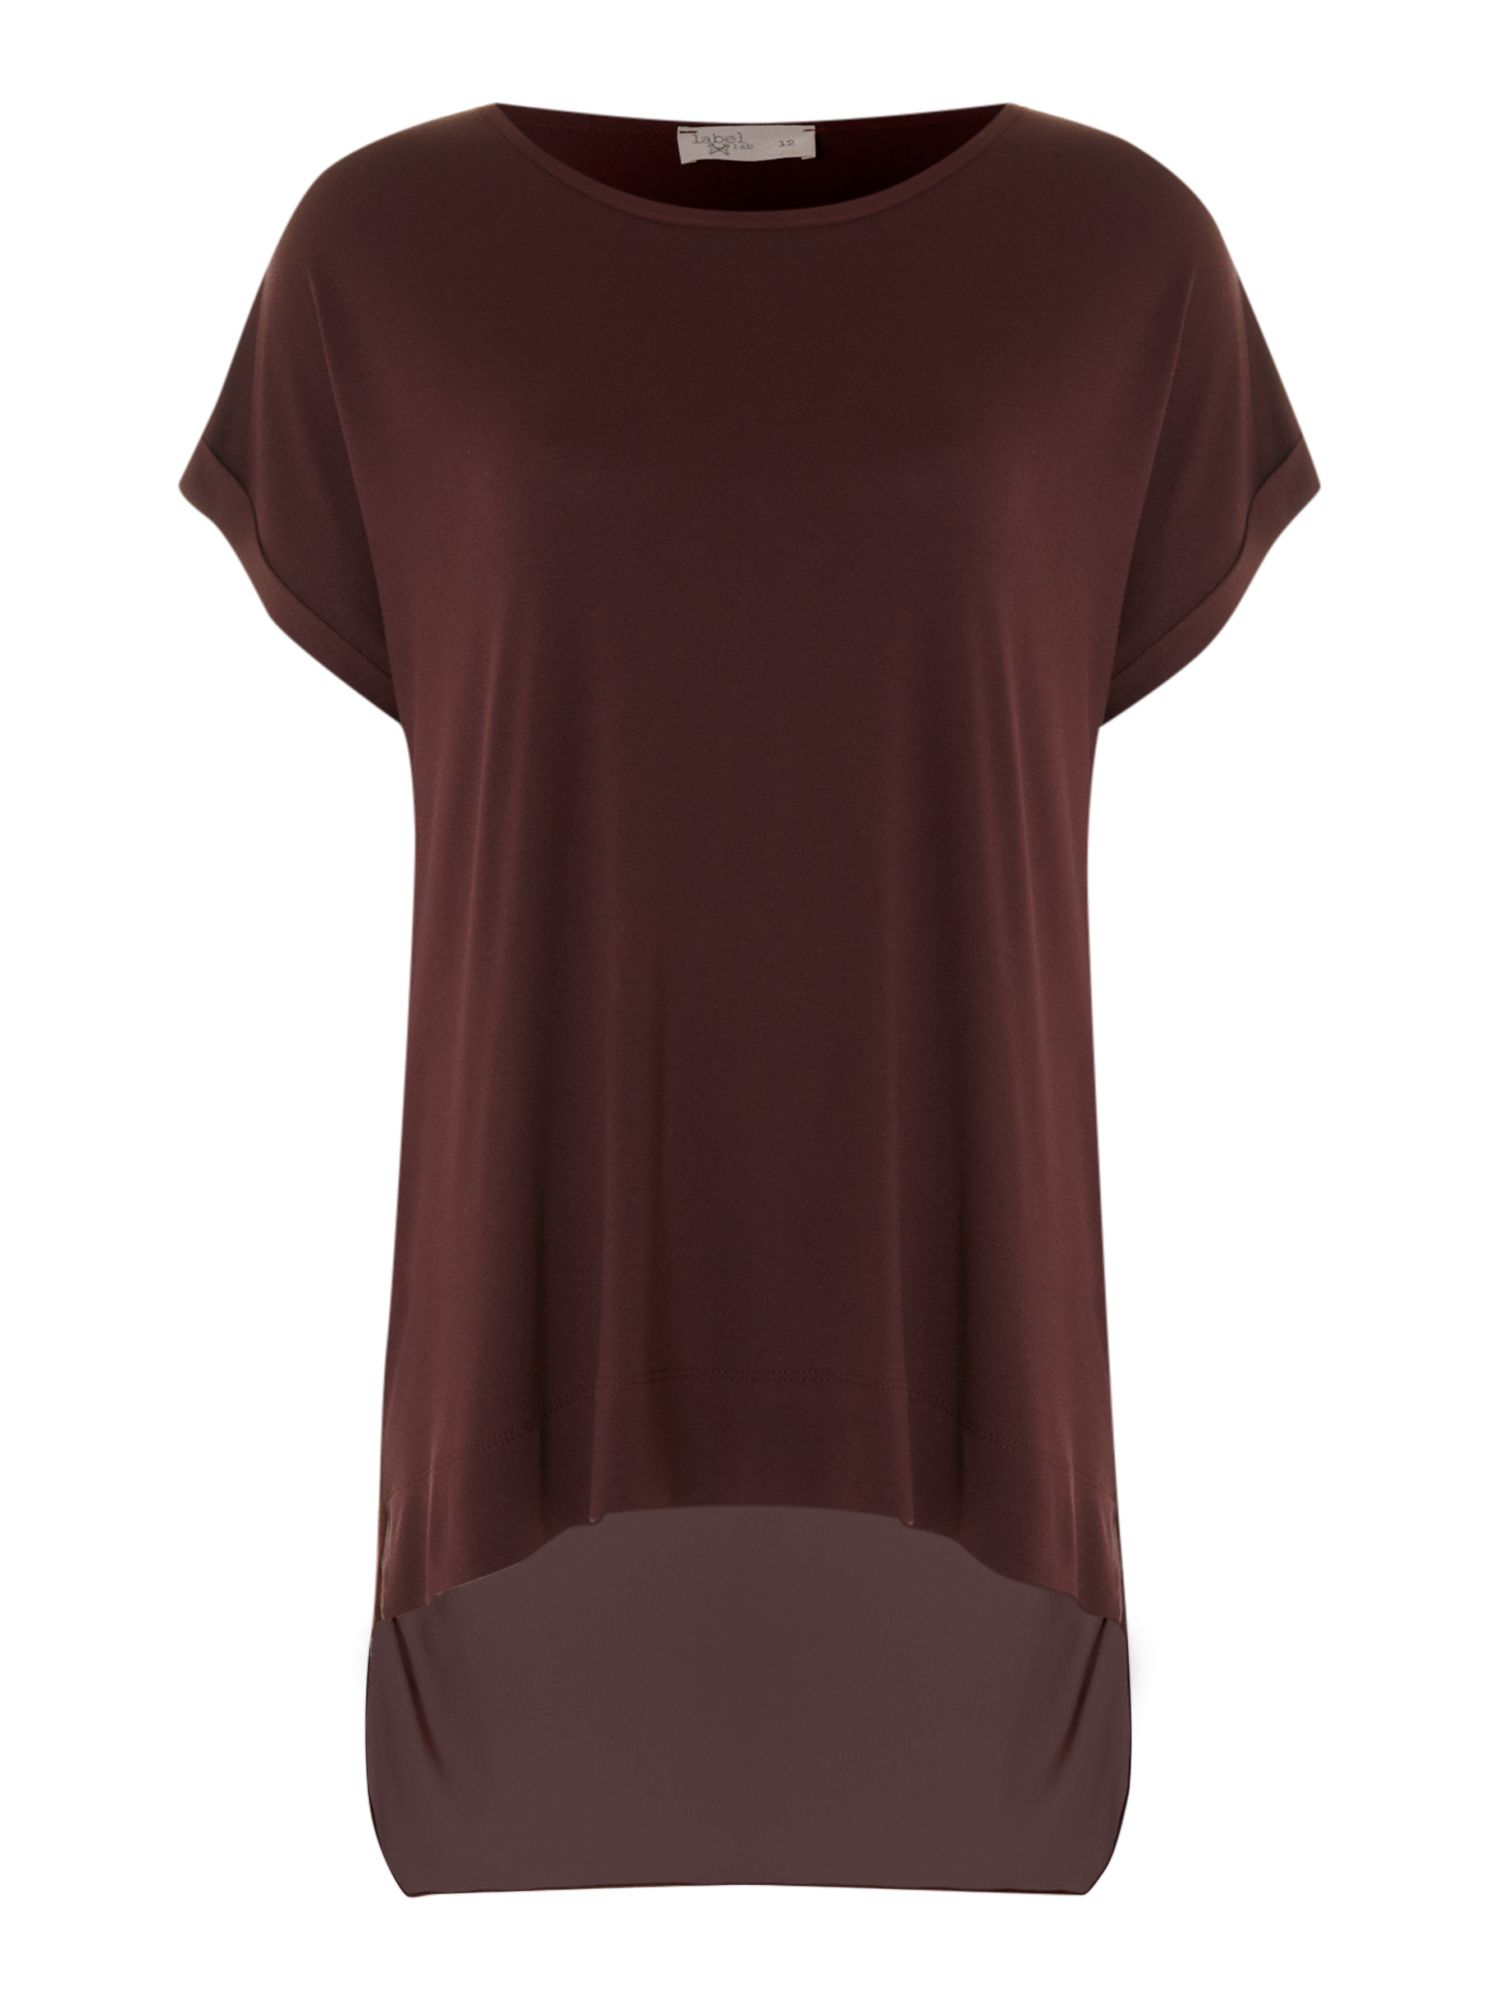 Layered back chiffon jersey mix tee